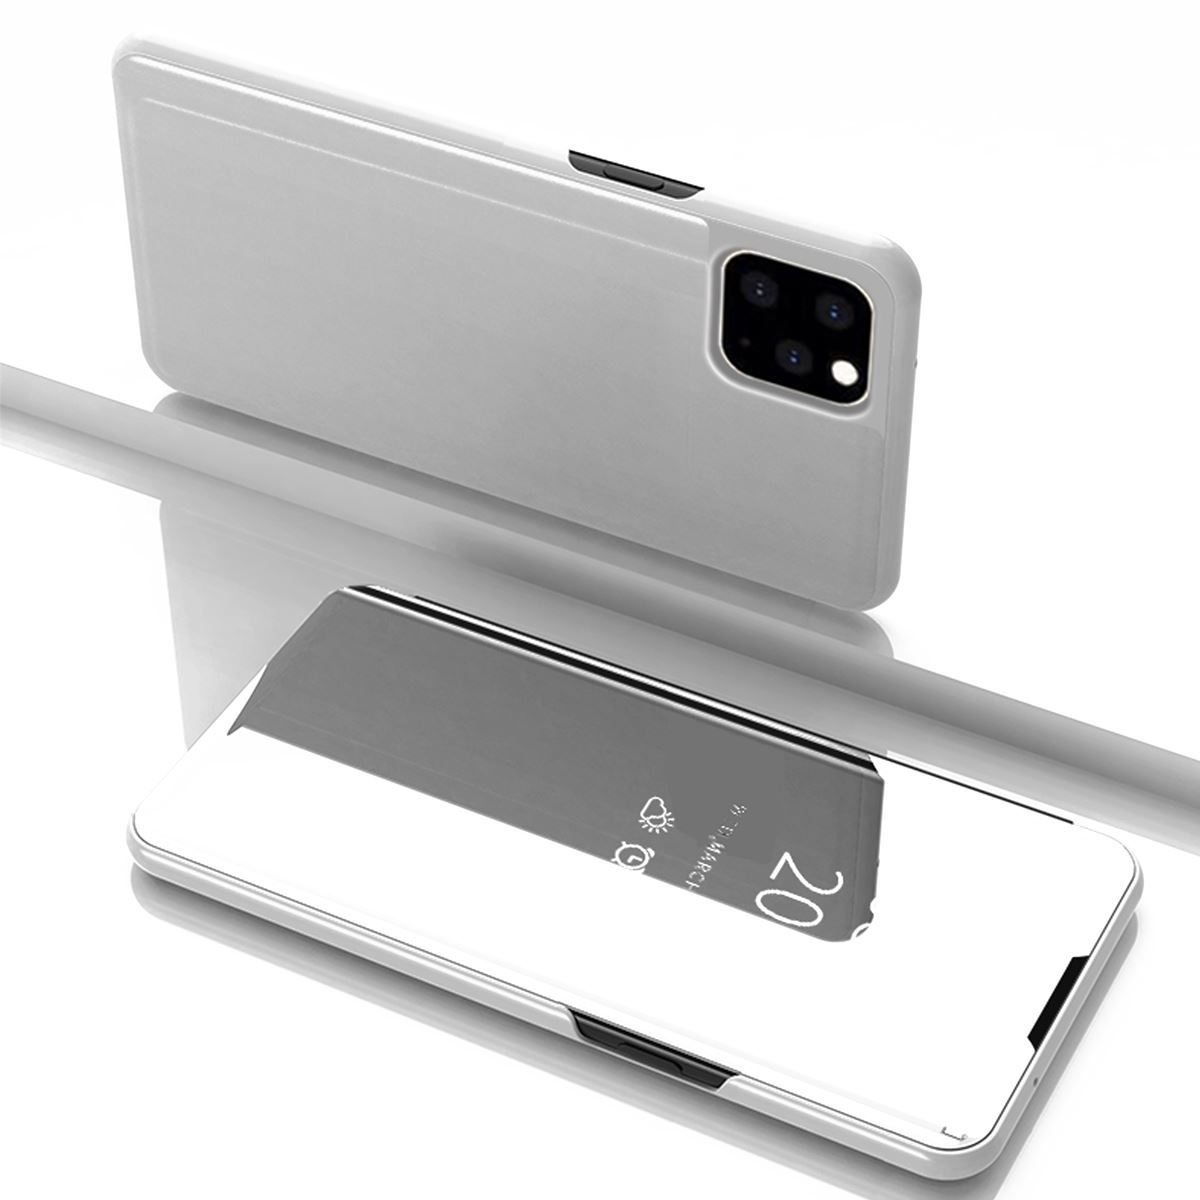 iPhone 11 Case Flip Stand Mirror Cover - Silver